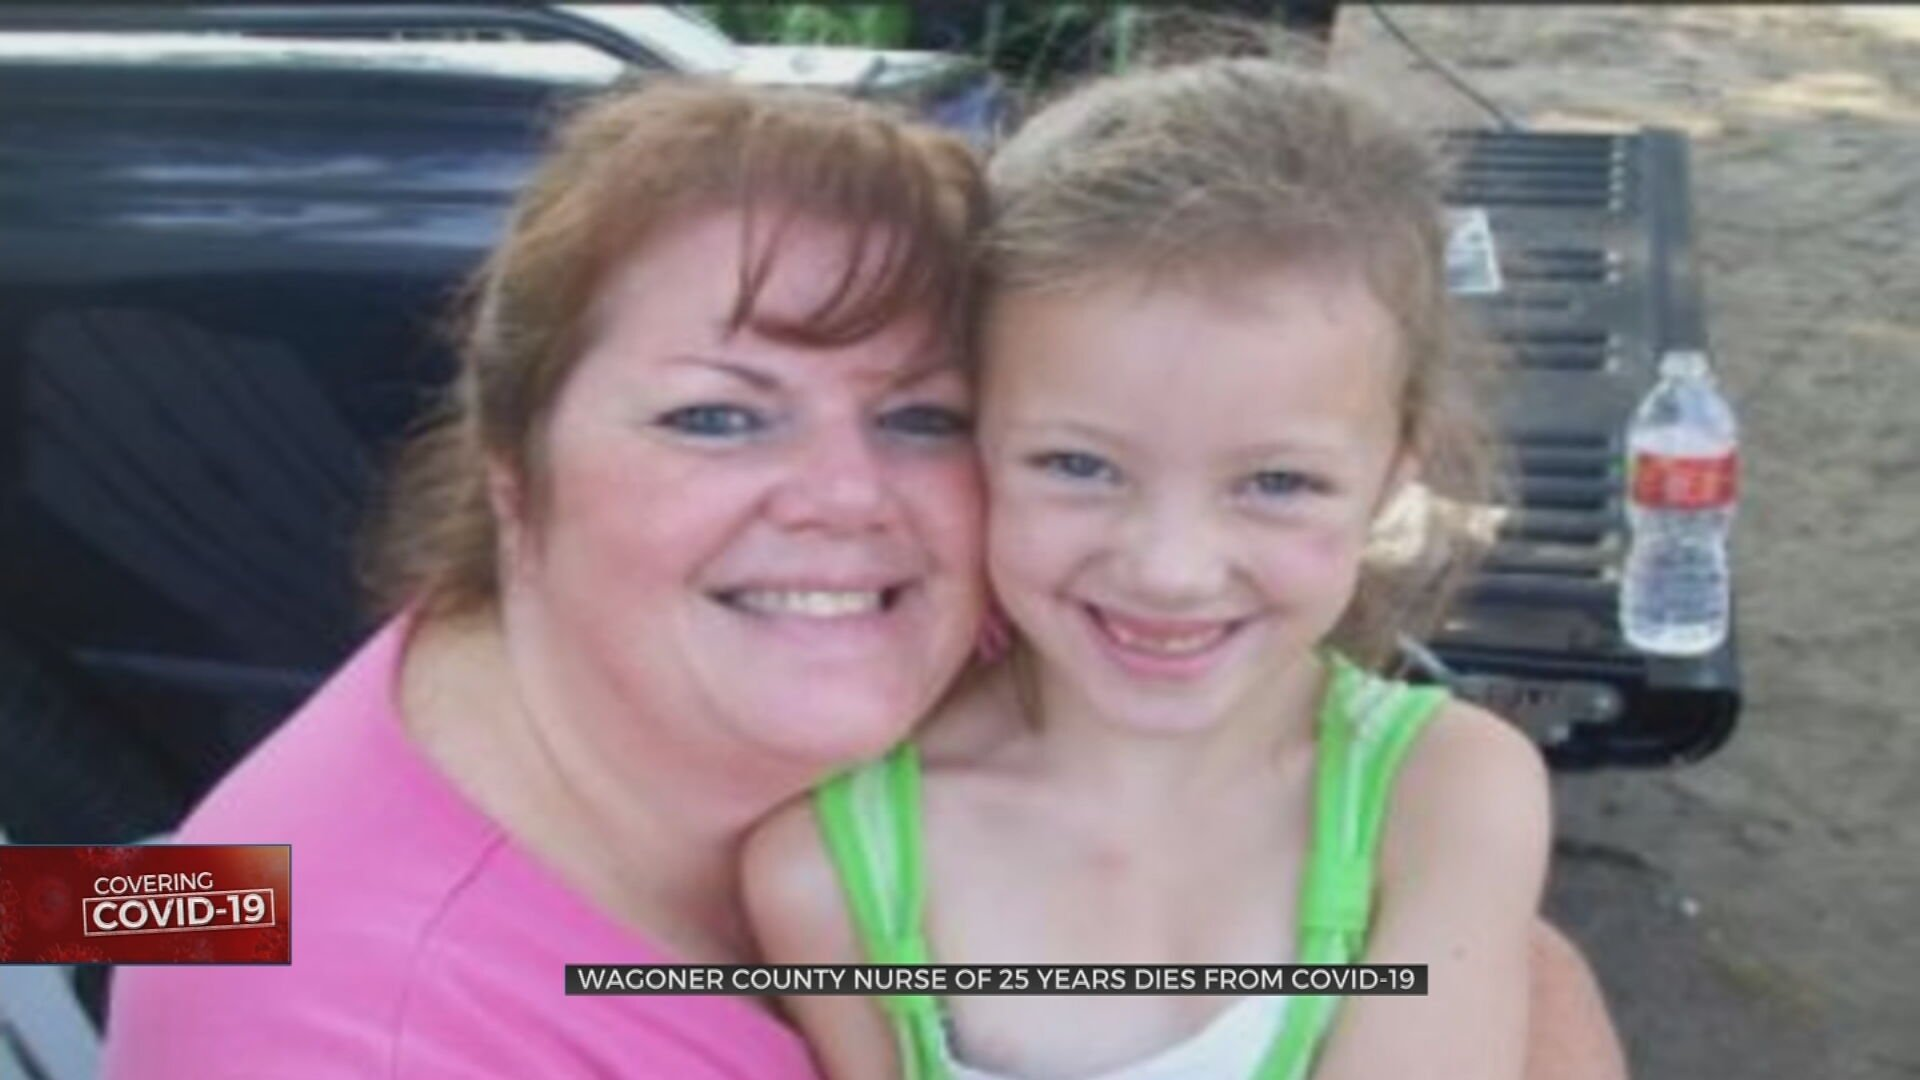 Loved Ones Remember Wagoner County Nurse Of 25 Years Who Died From COVID-19